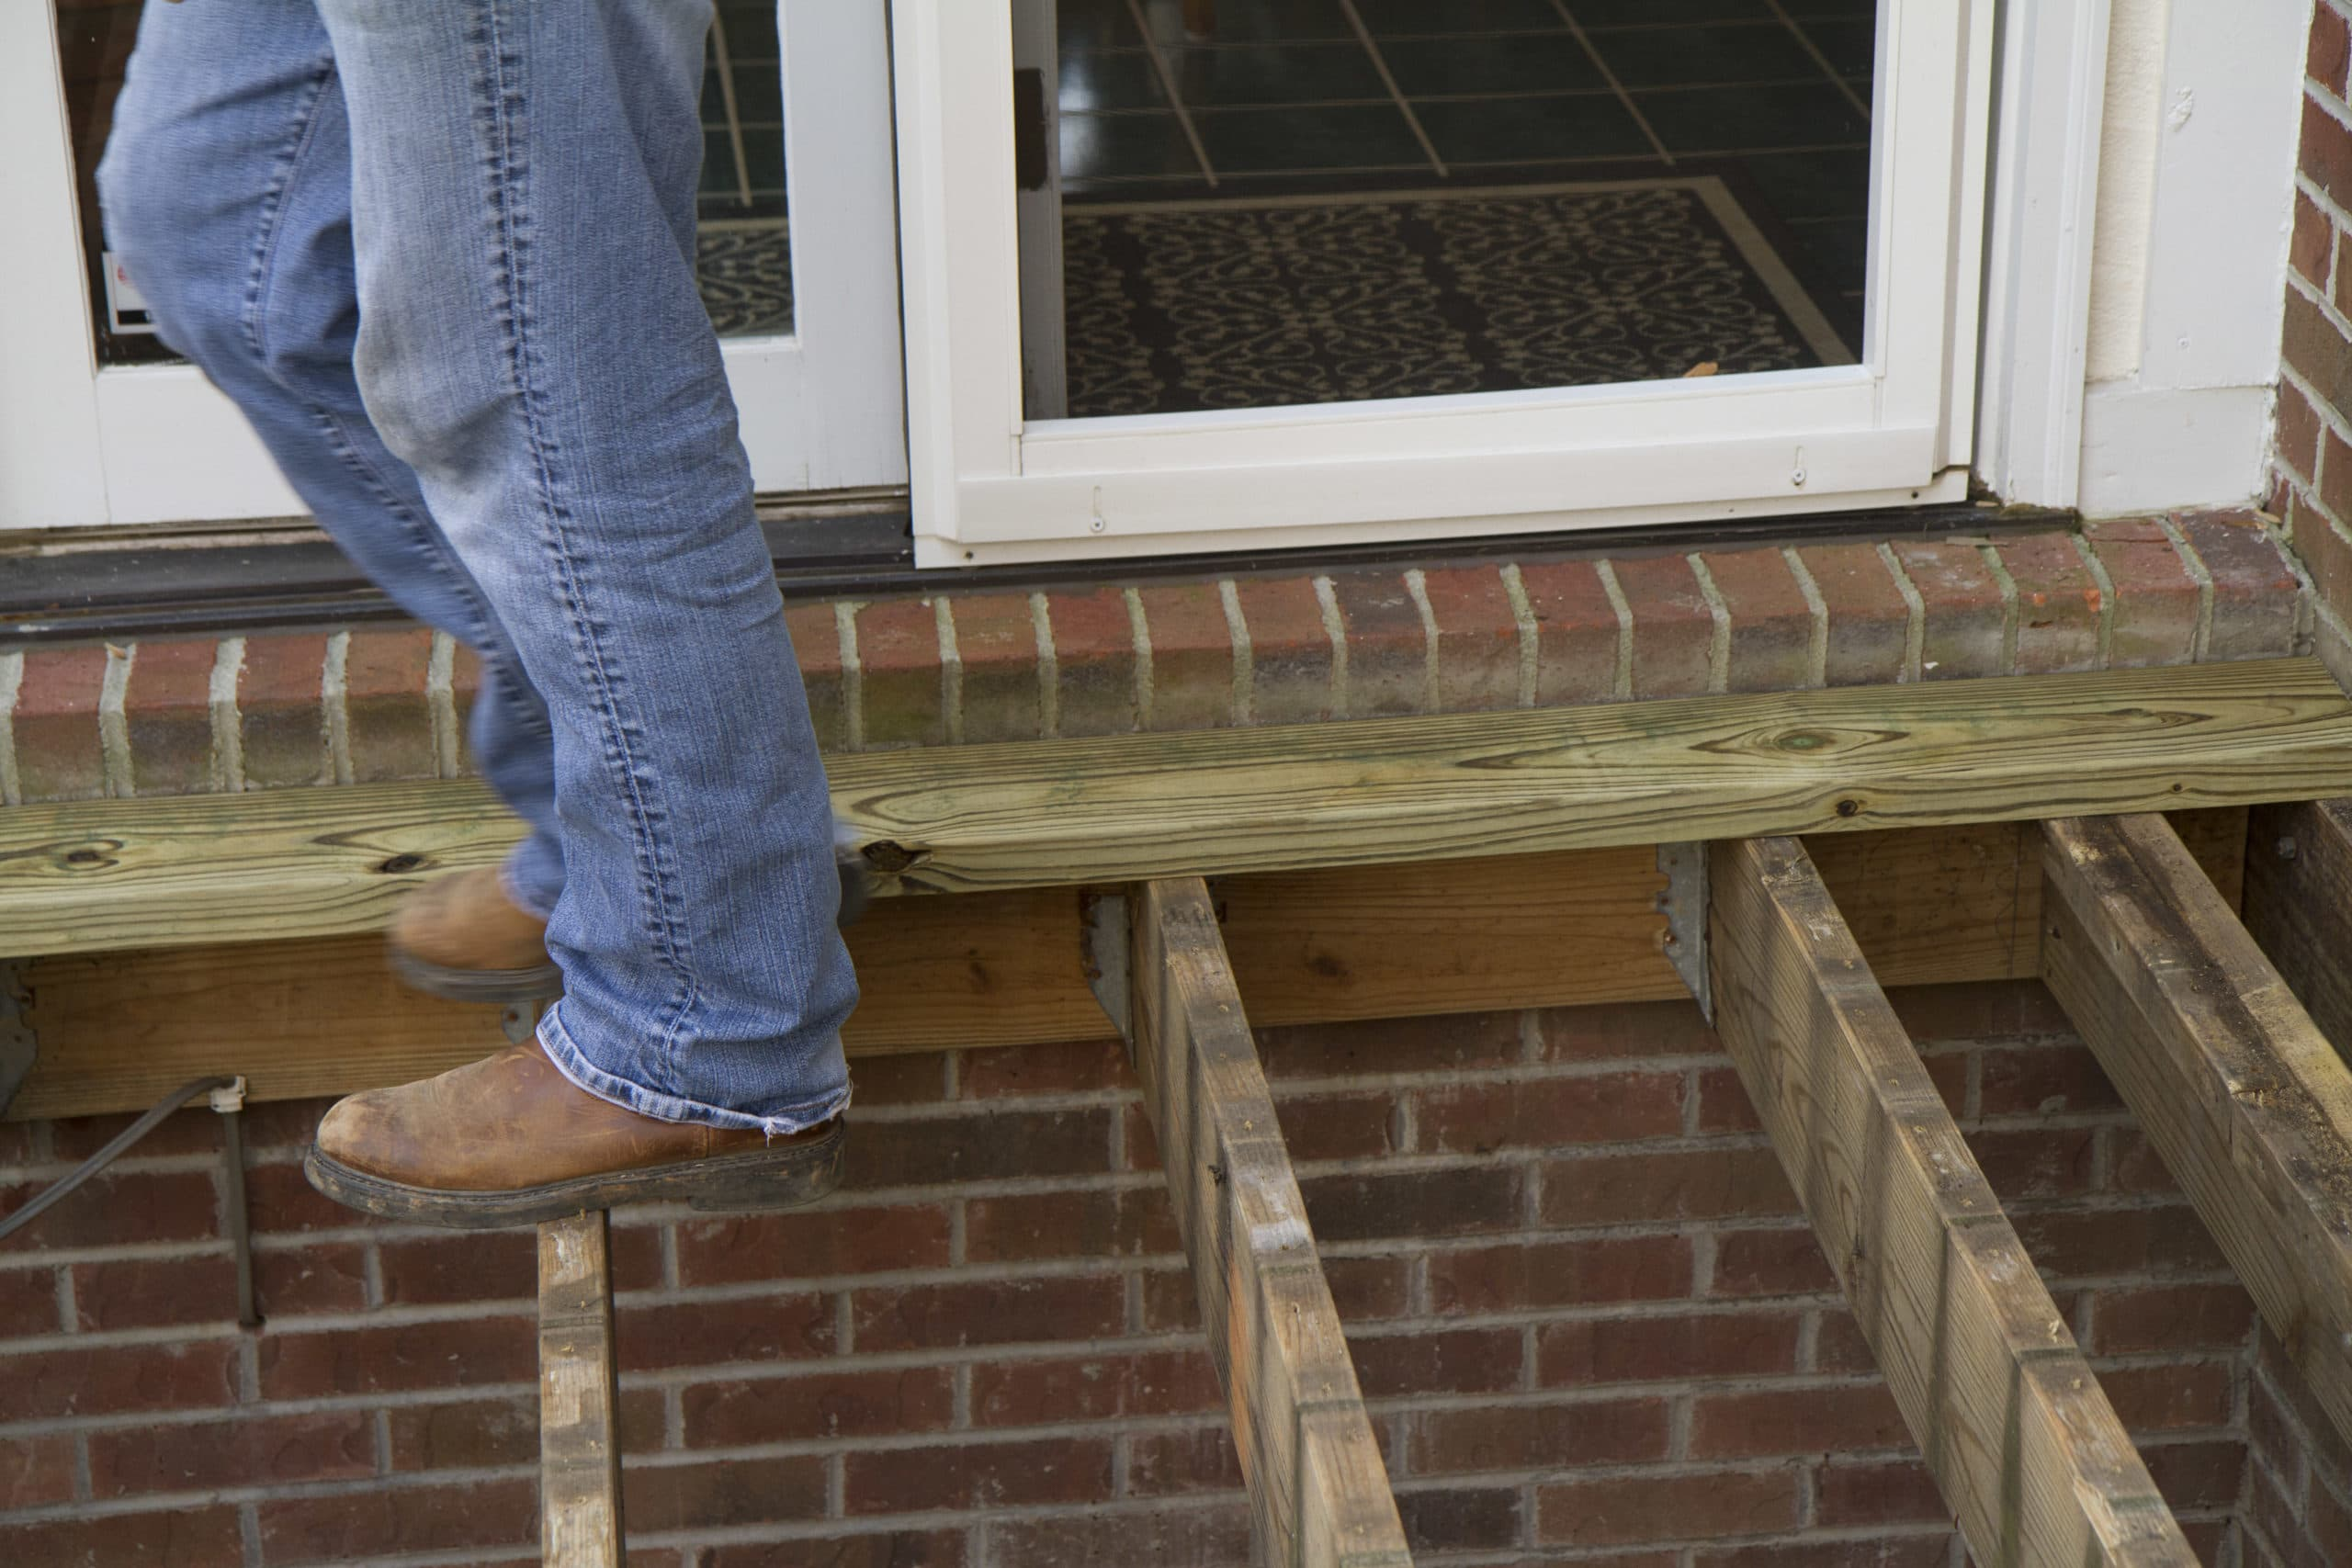 10 things to do when building a diy deck wood it 39 s real wood it 39 s real - Things consider installing balcony home ...